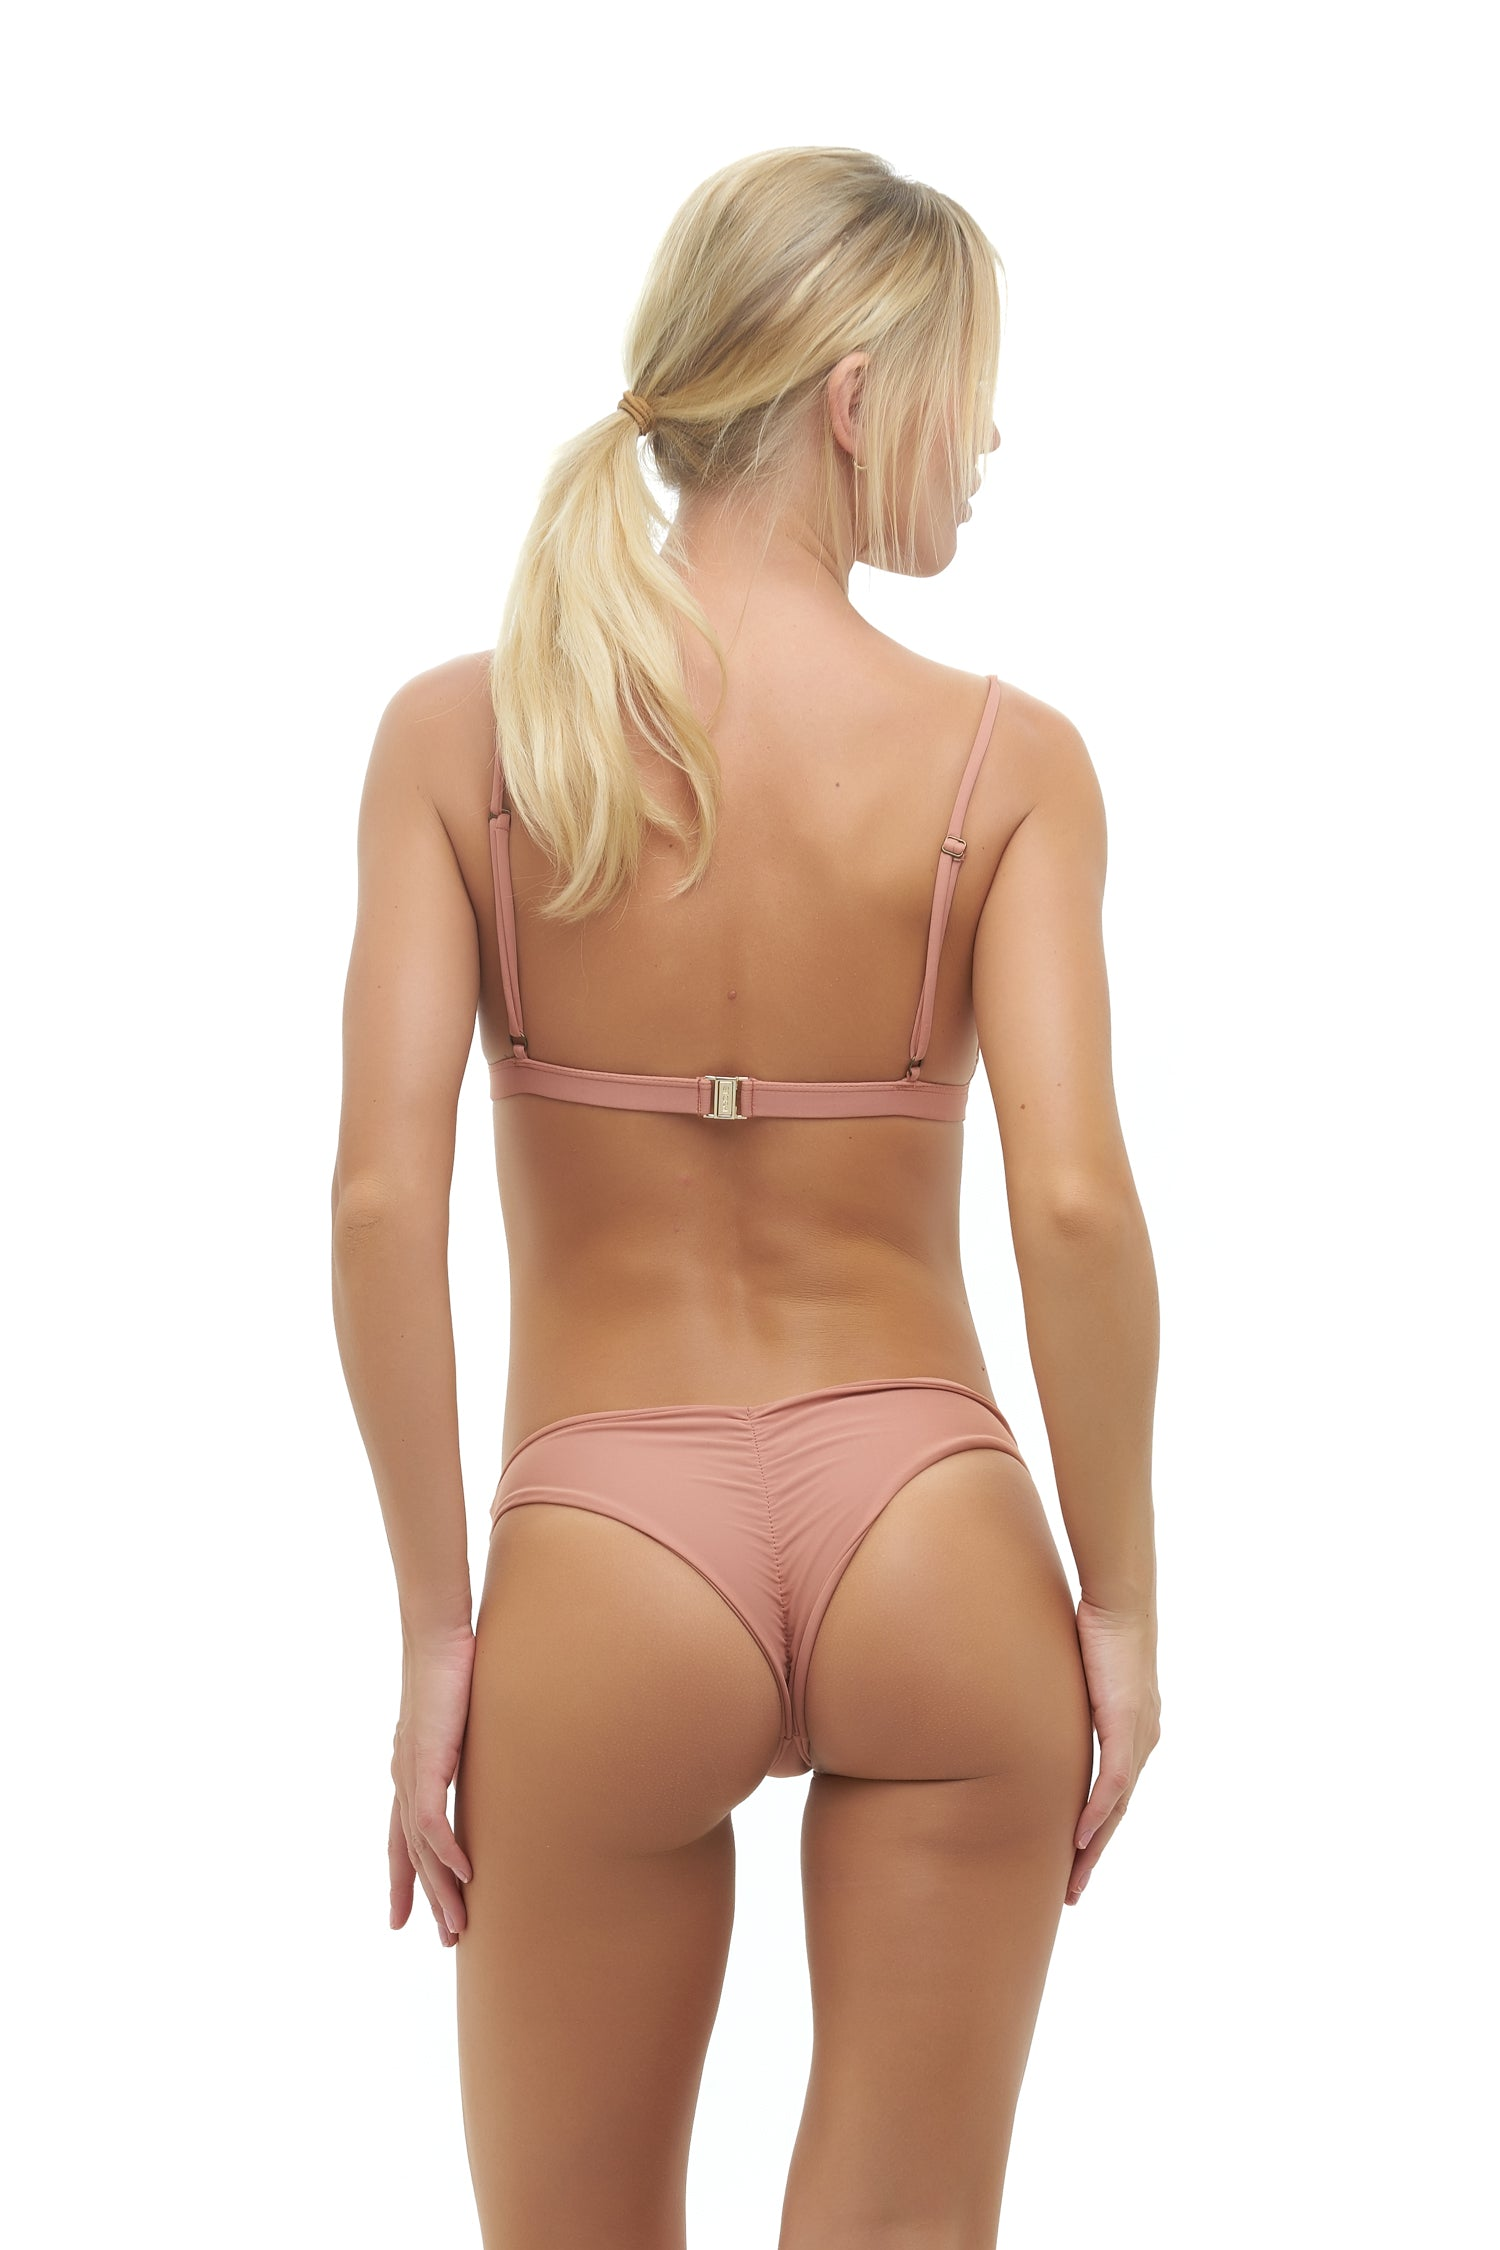 Storm Swimwear - Mallorca - Triangle Bikini Top with Paded In Sun Kissed